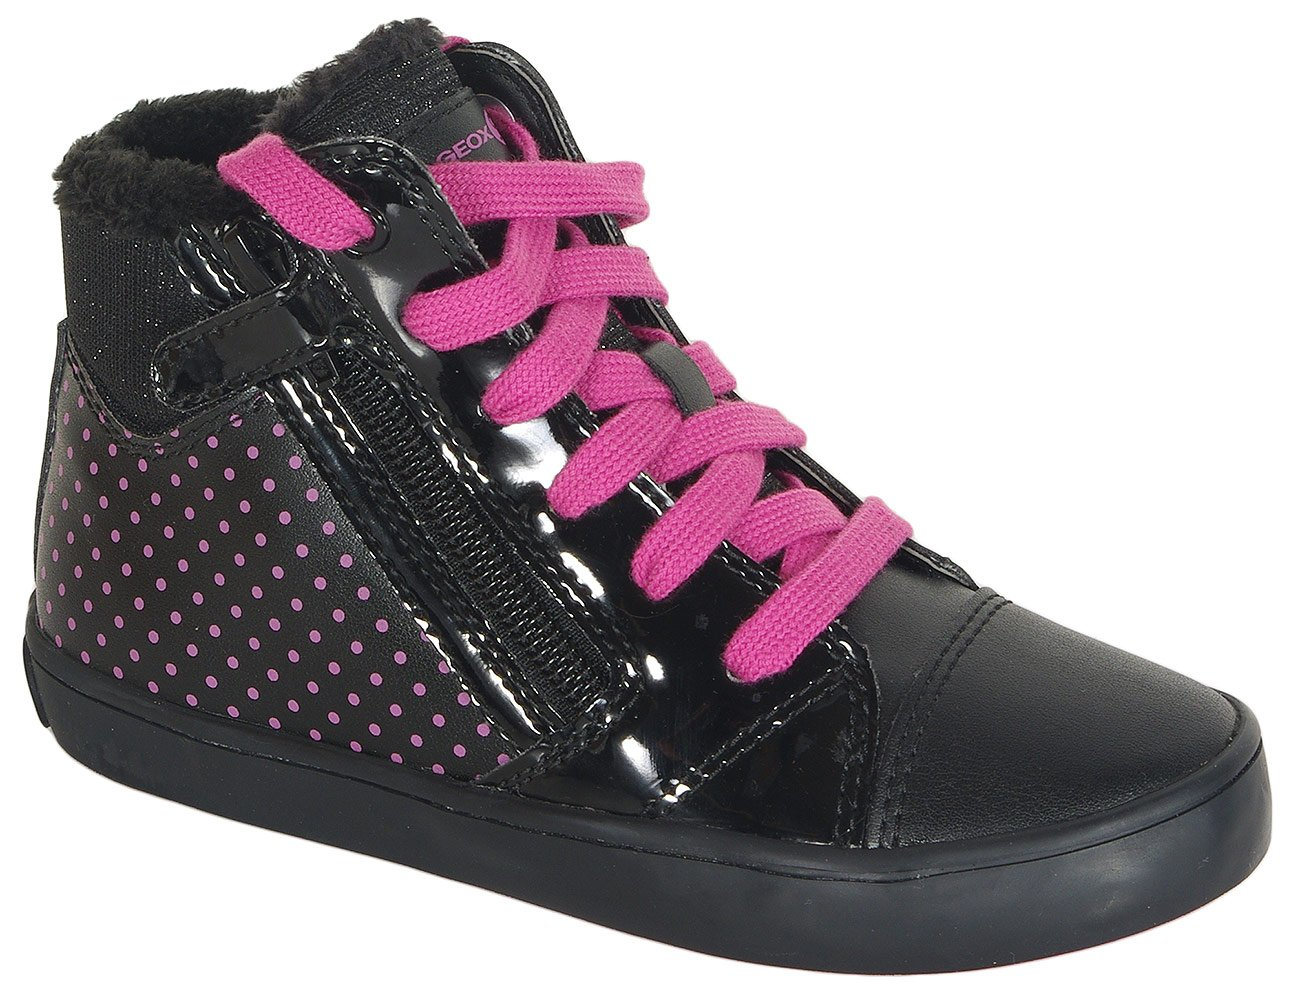 GEOX Gisli B sneakers GBK girl black